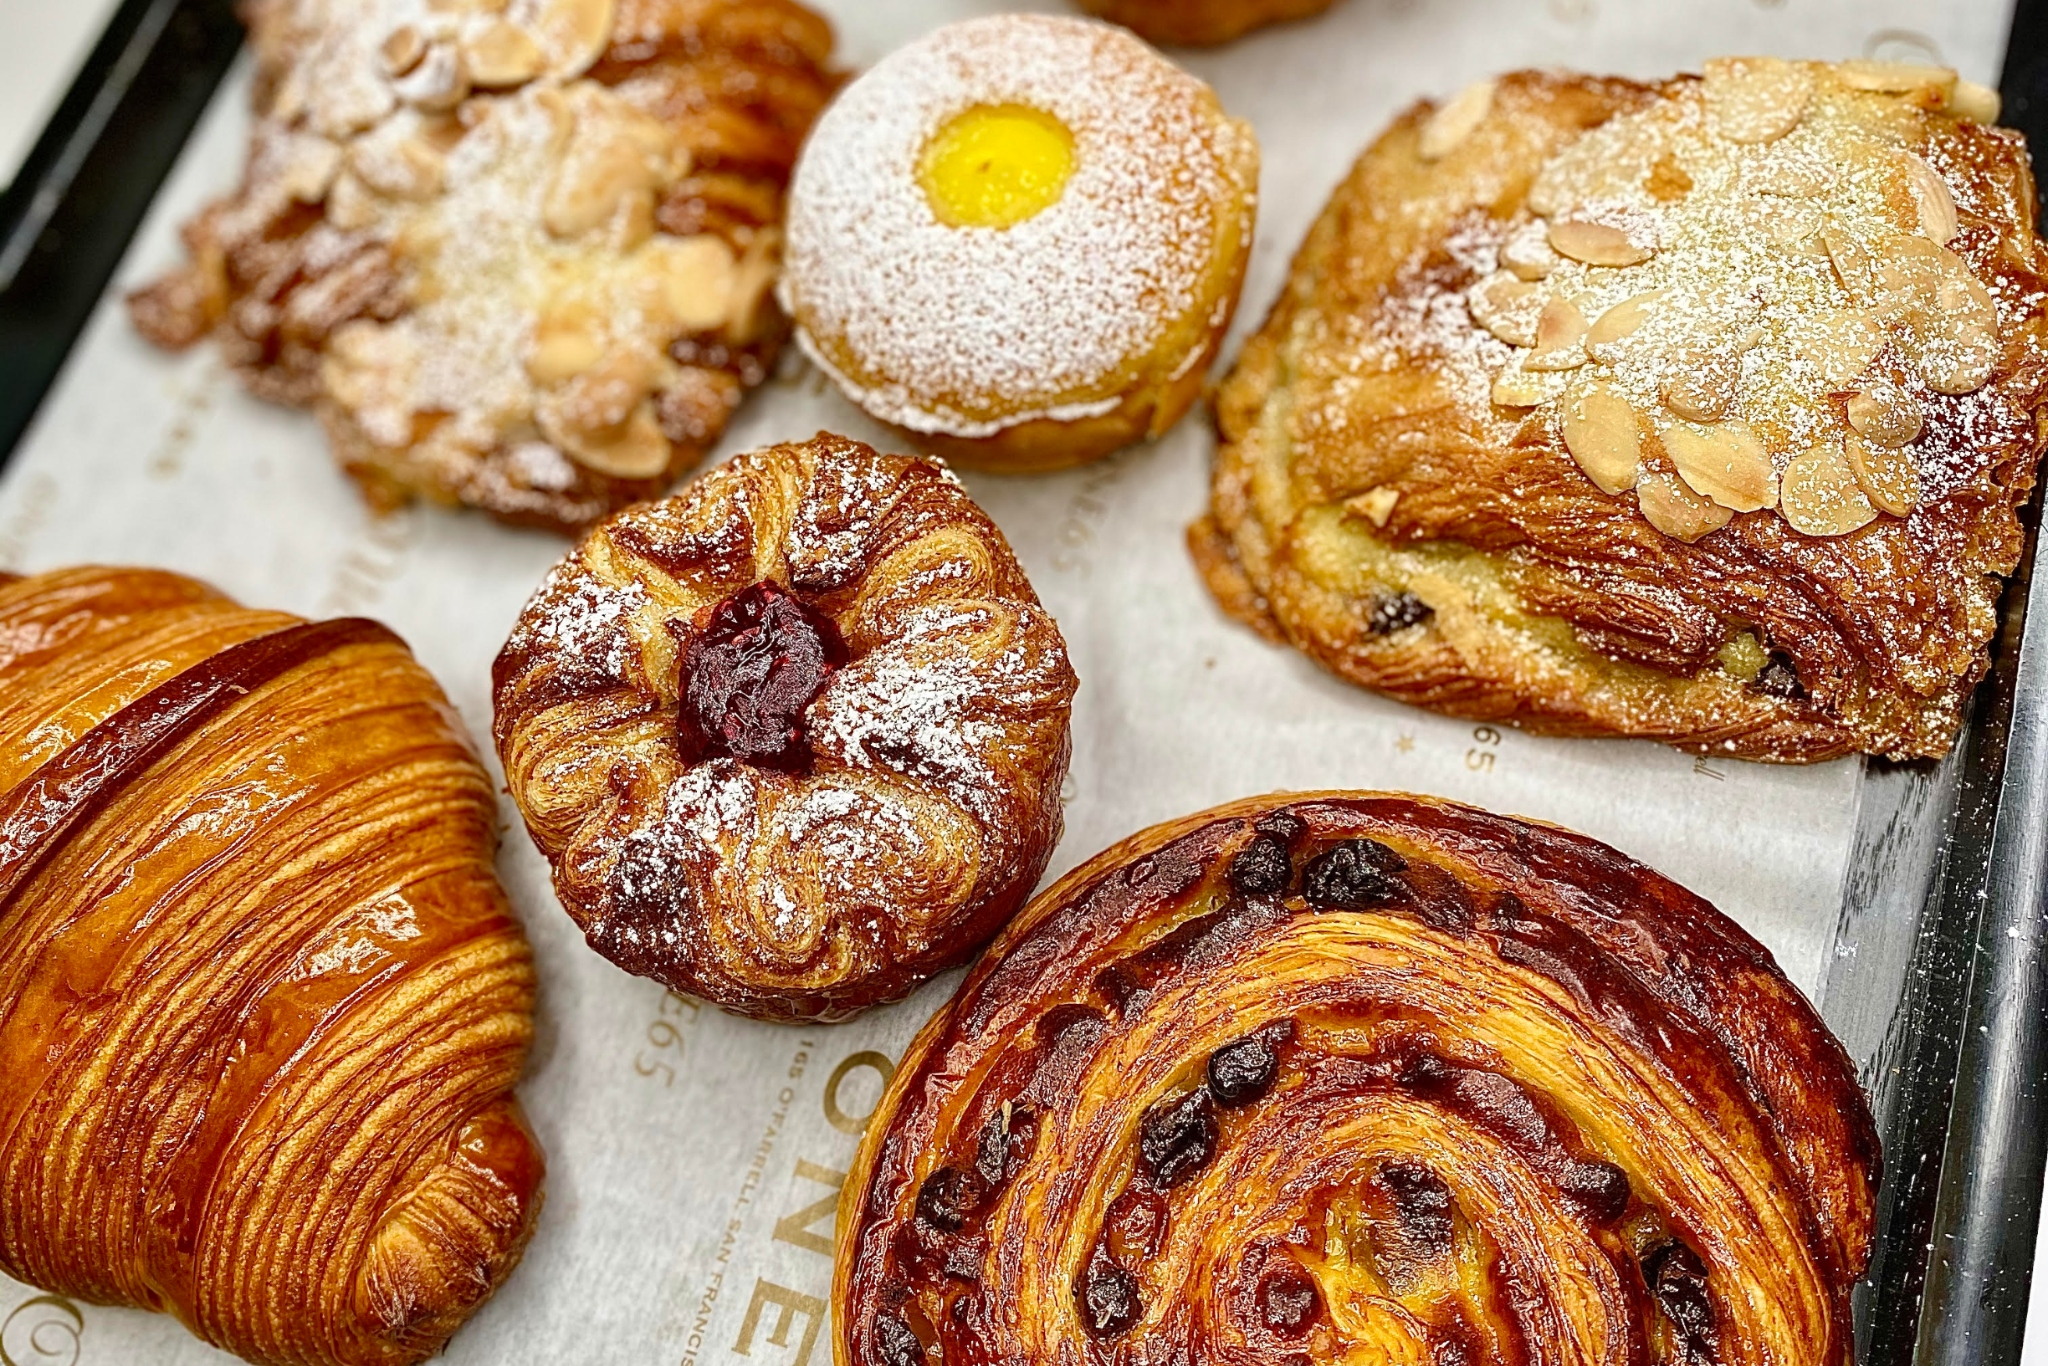 Sweet news: French bakery reopens inside townhouse near Union Square